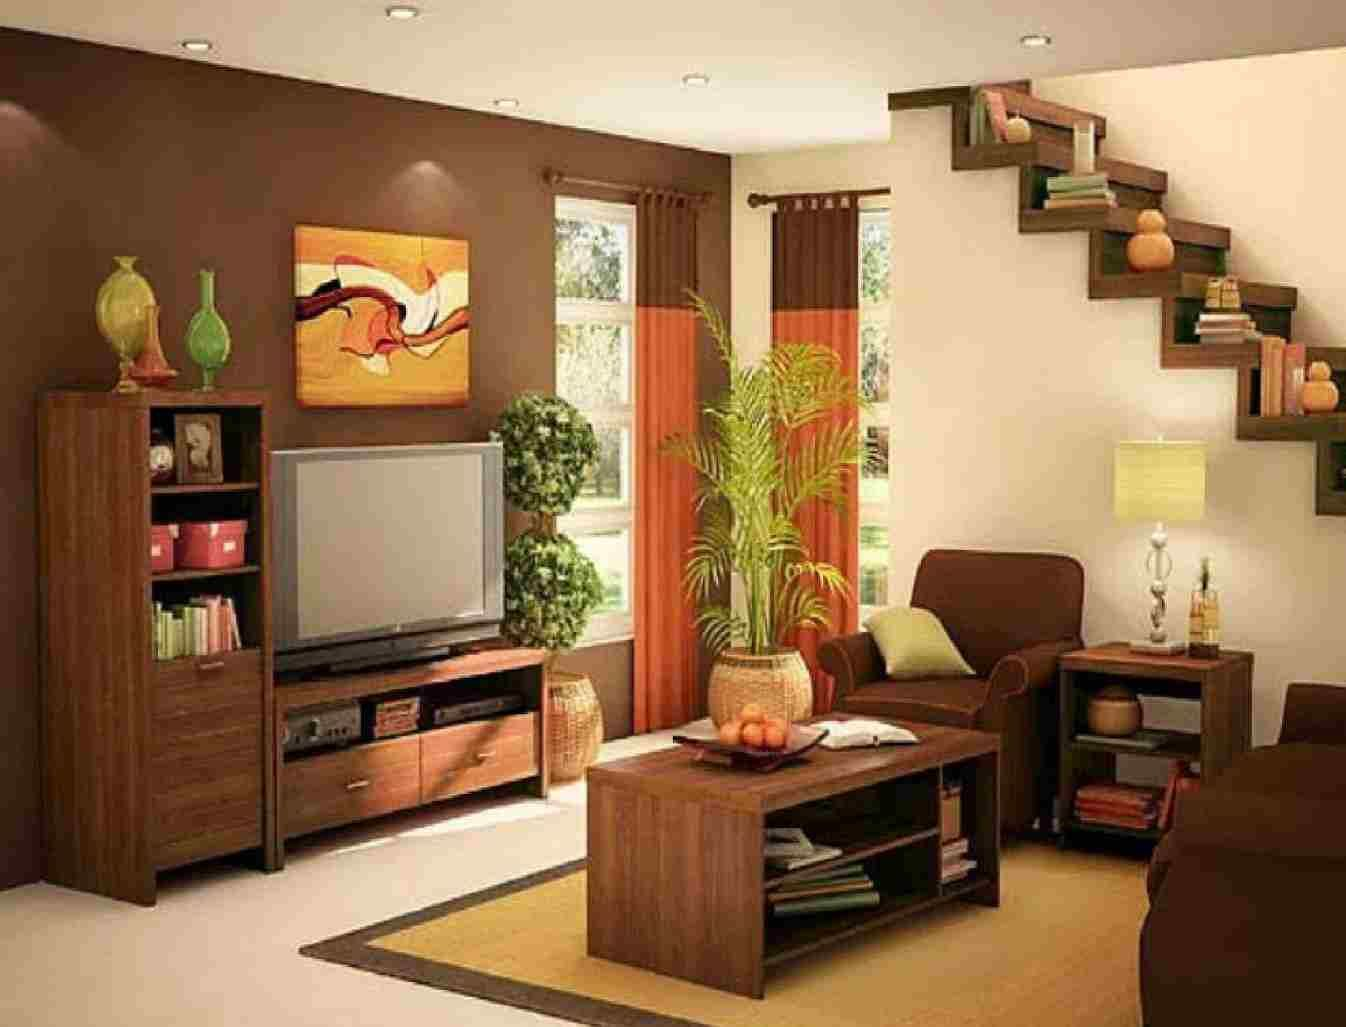 Interior decoration with waste material